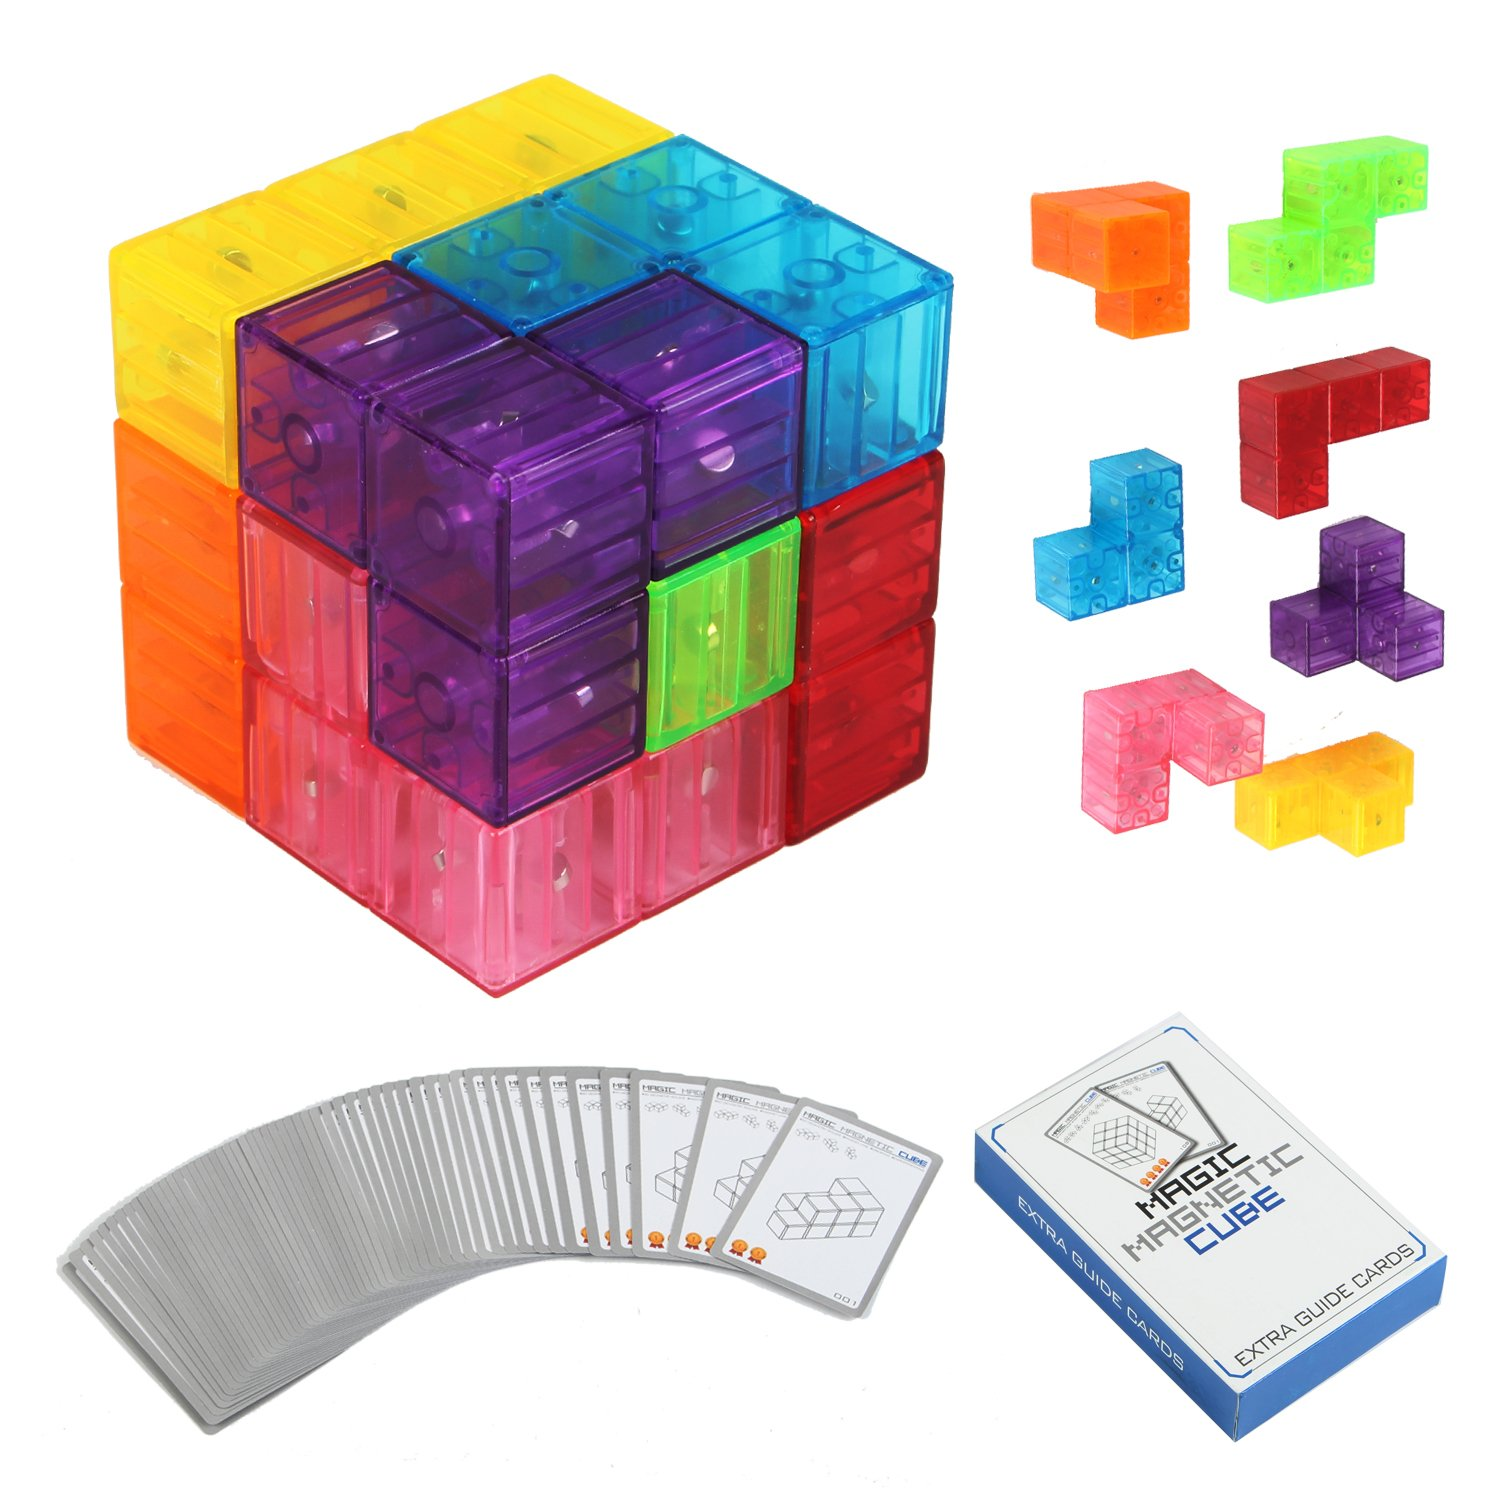 Zhenwei Magnetic Puzzles 7pcs Magnetic Bricks 54 Smart Cards Brain Toy Brainteaser Puzzles for Develop Kids Intelligence 12 in 1 intelligence brain training metal puzzles set silver